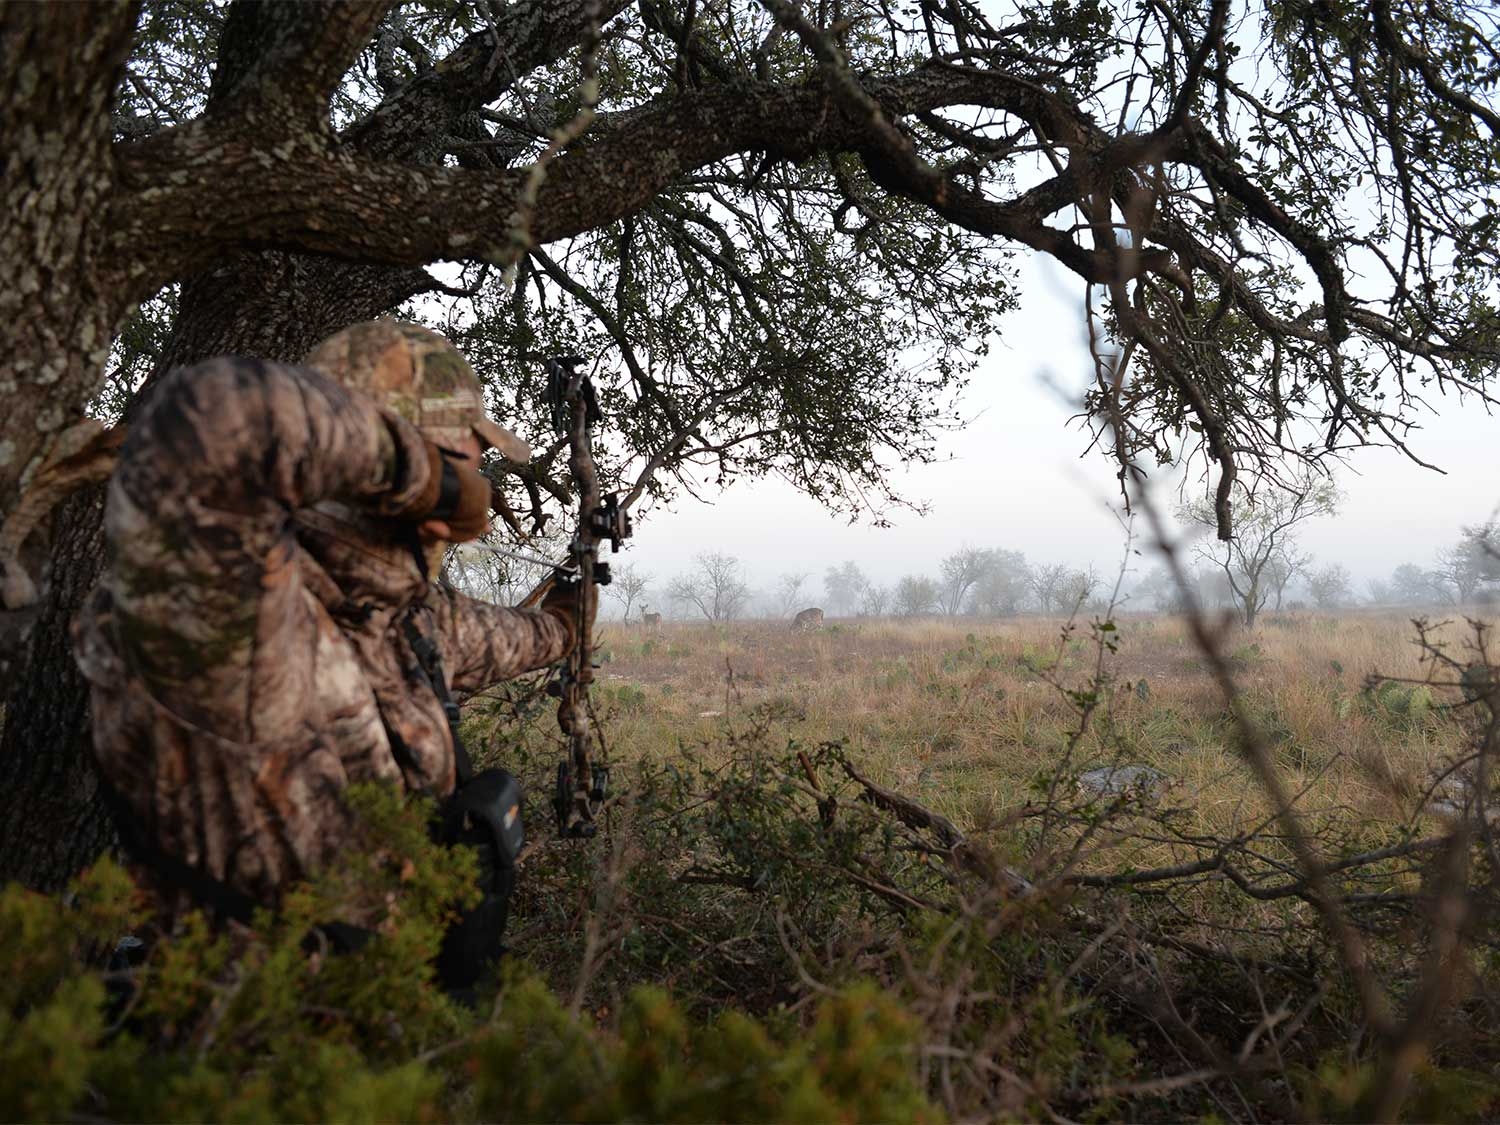 A hunter draws back on a compound bow from in the brush.